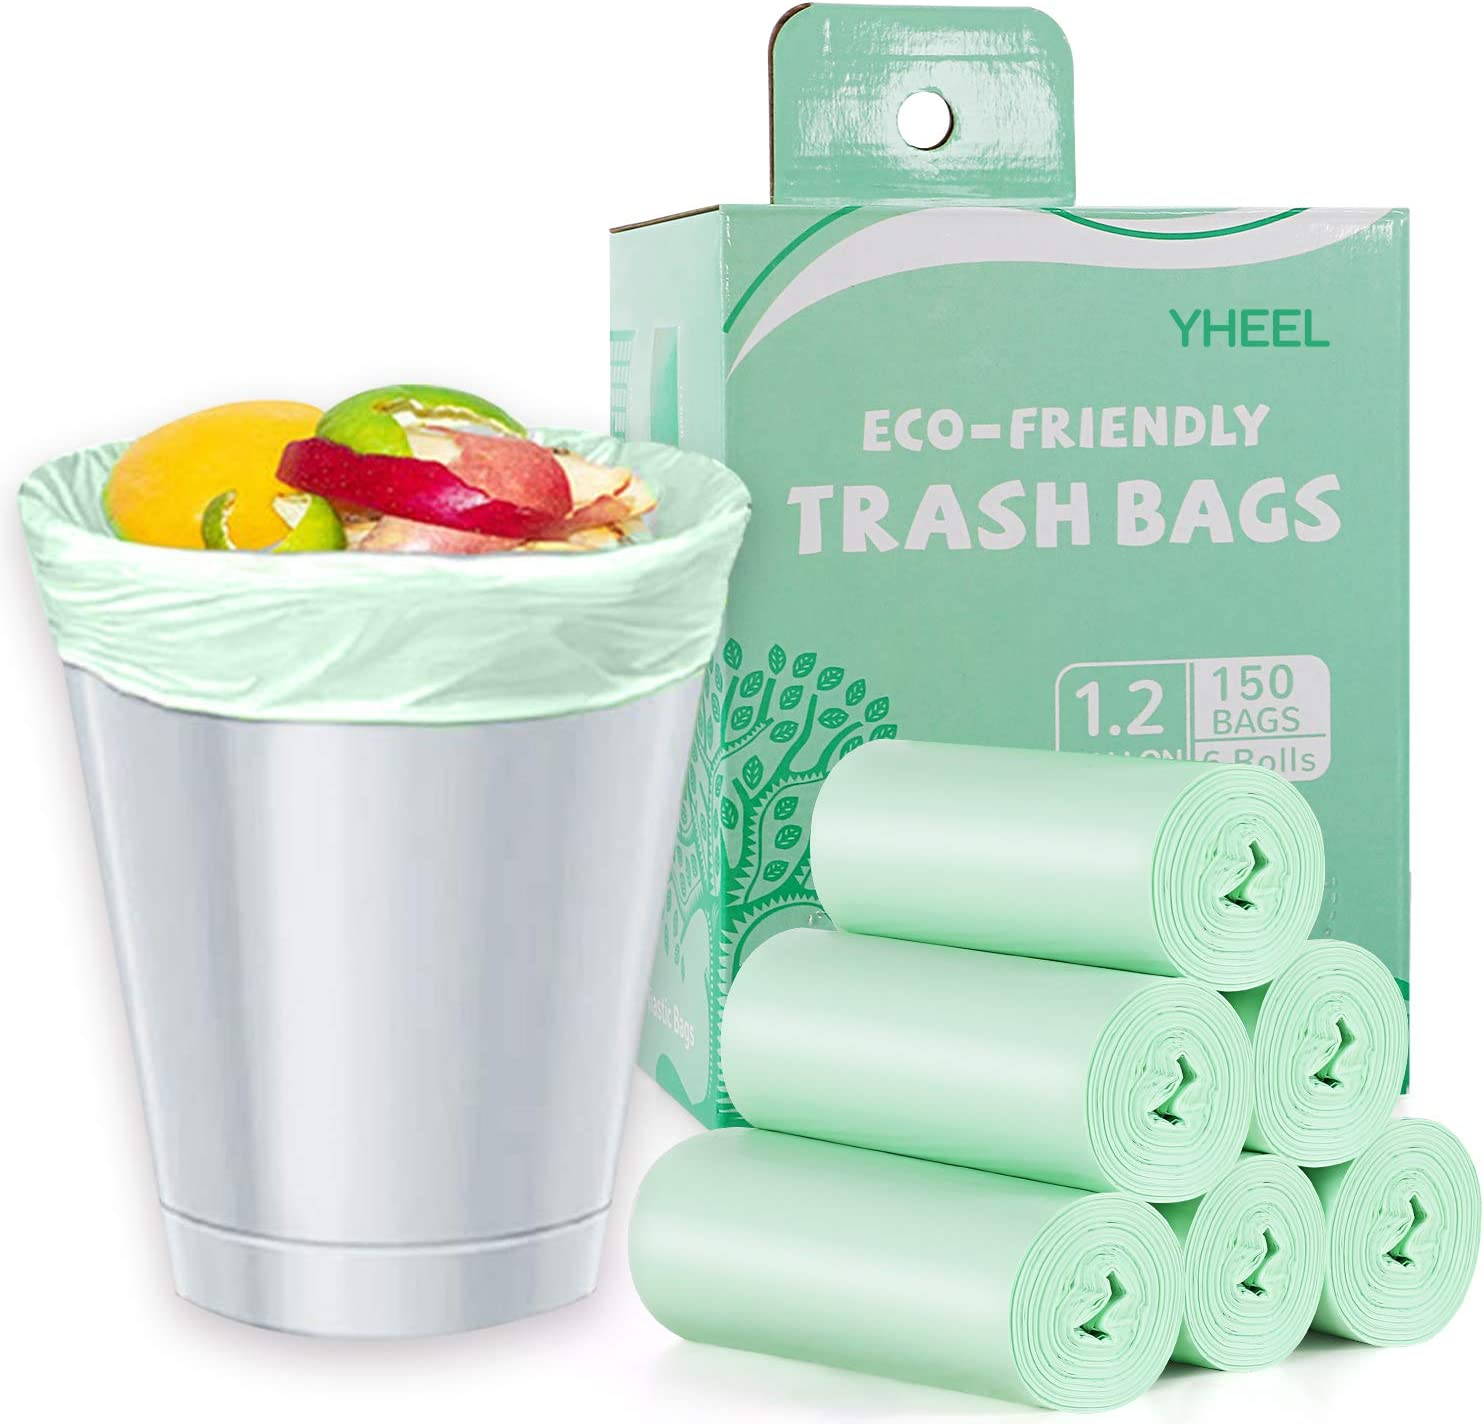 1.2 Gallon Small Trash bags Biodegradable, Mini Recycling & Degradable Garbage Bags Fit 5 Liter Can Liners for Kitchen Bathroom Office Car (150 Counts,Green)